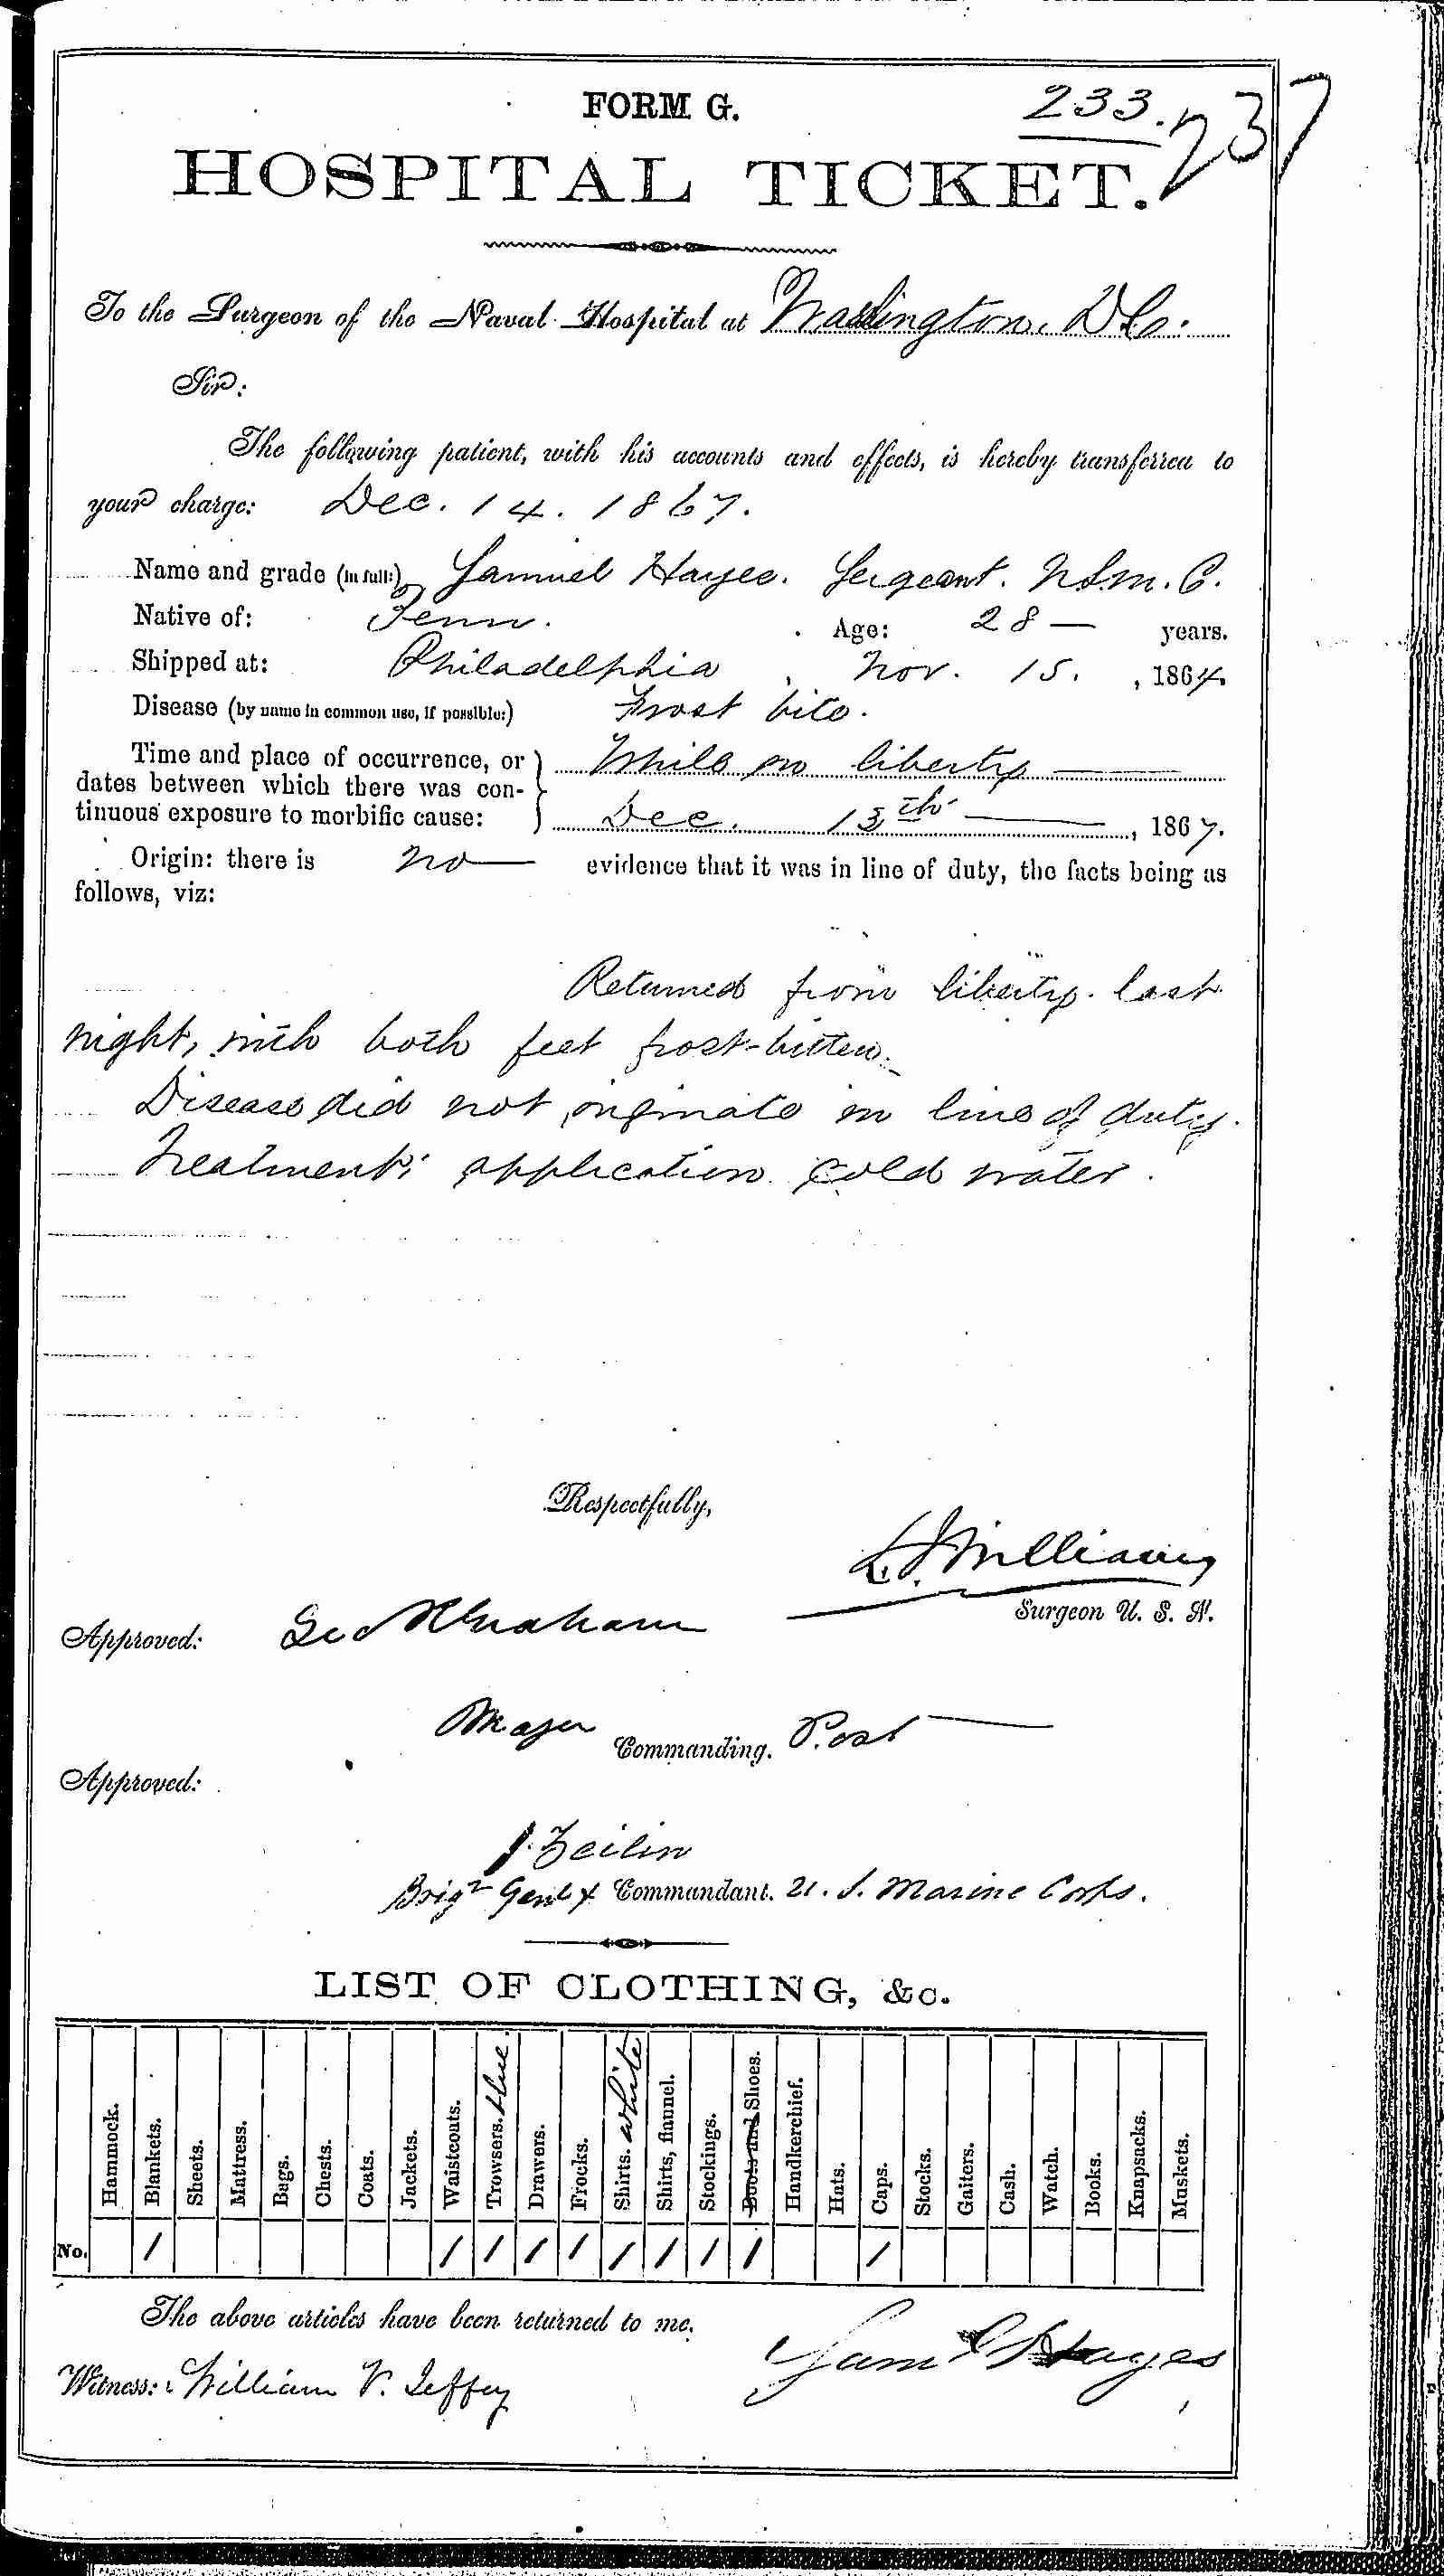 Entry for Samuel Hayes (second admission page 1 of 2) in the log Hospital Tickets and Case Papers - Naval Hospital - Washington, D.C. - 1866-68